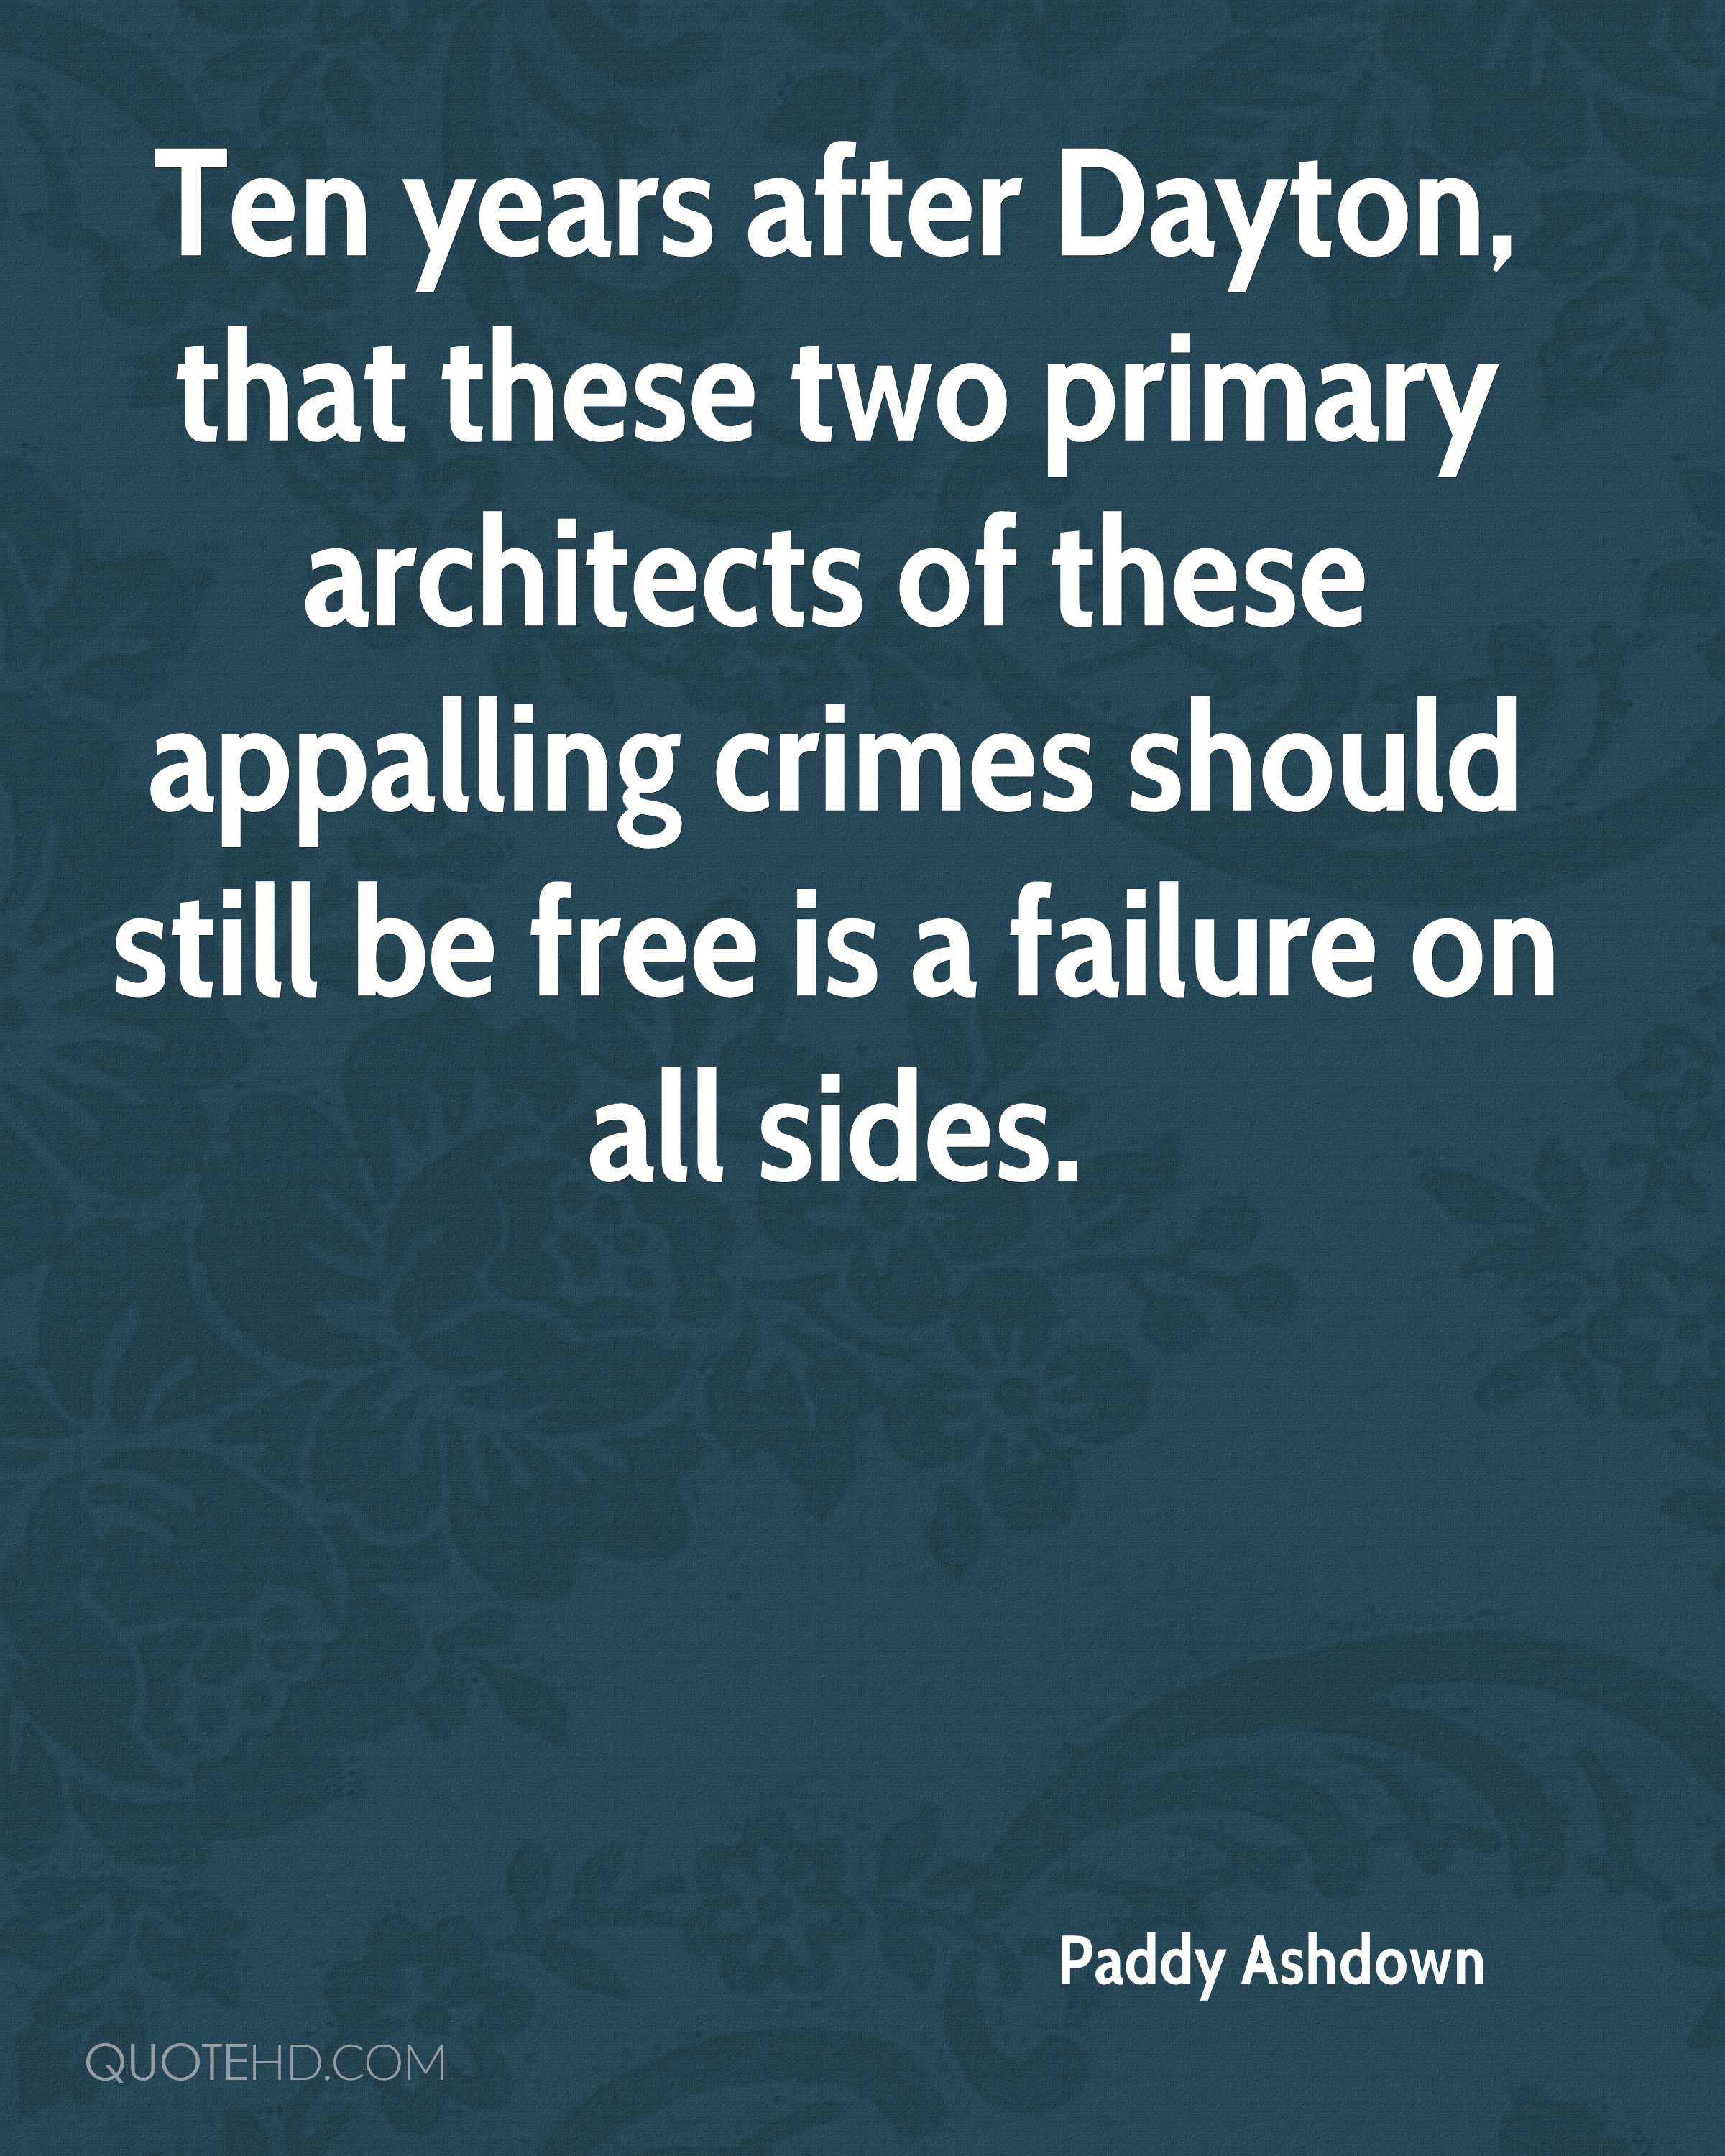 Ten years after Dayton, that these two primary architects of these appalling crimes should still be free is a failure on all sides.